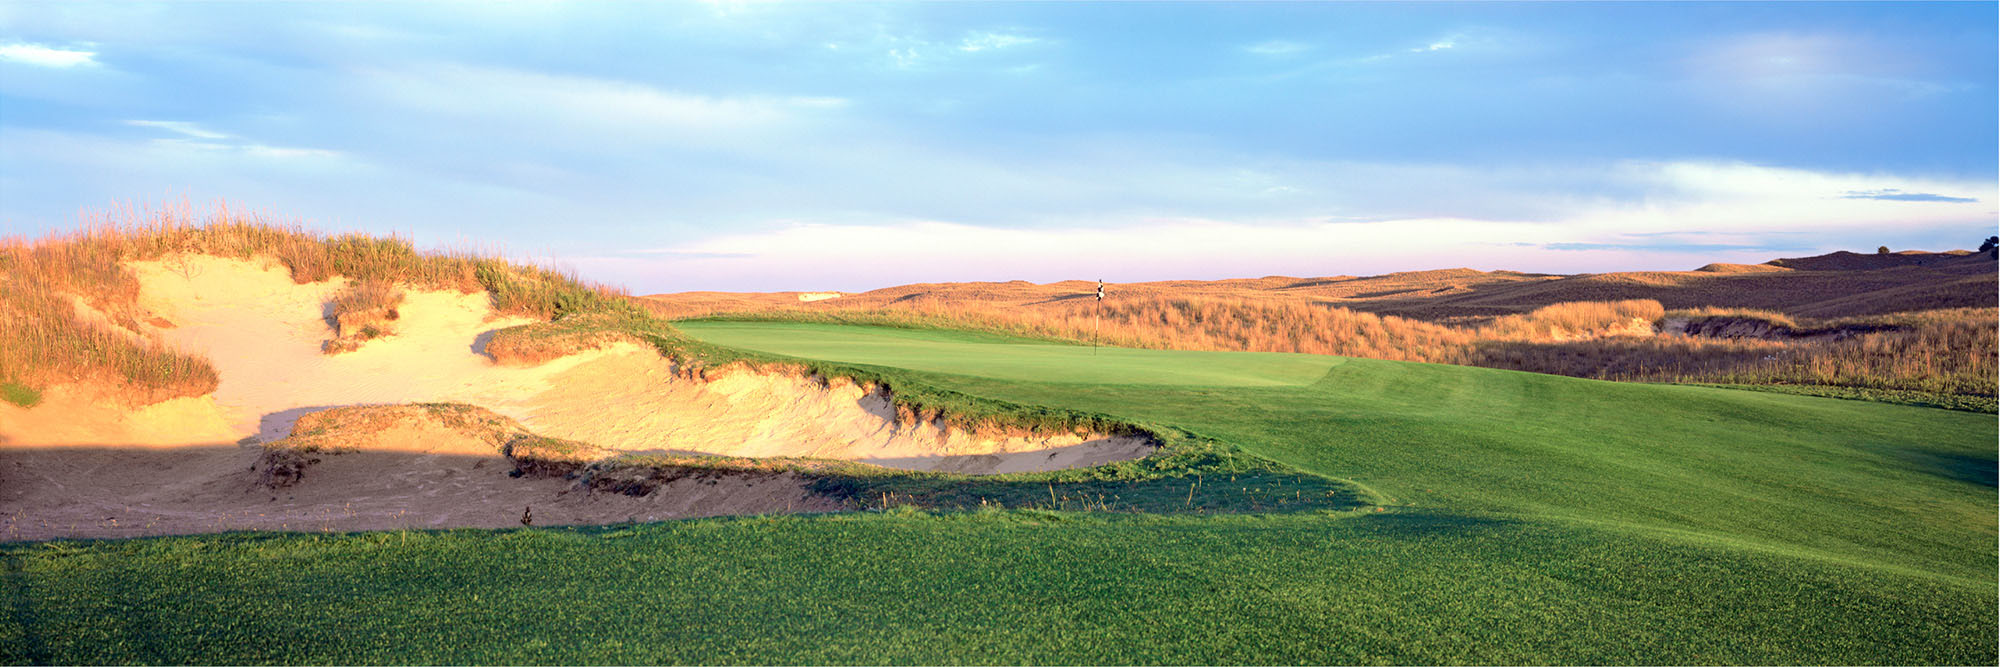 Golf Course Image - Sand Hills No. 7